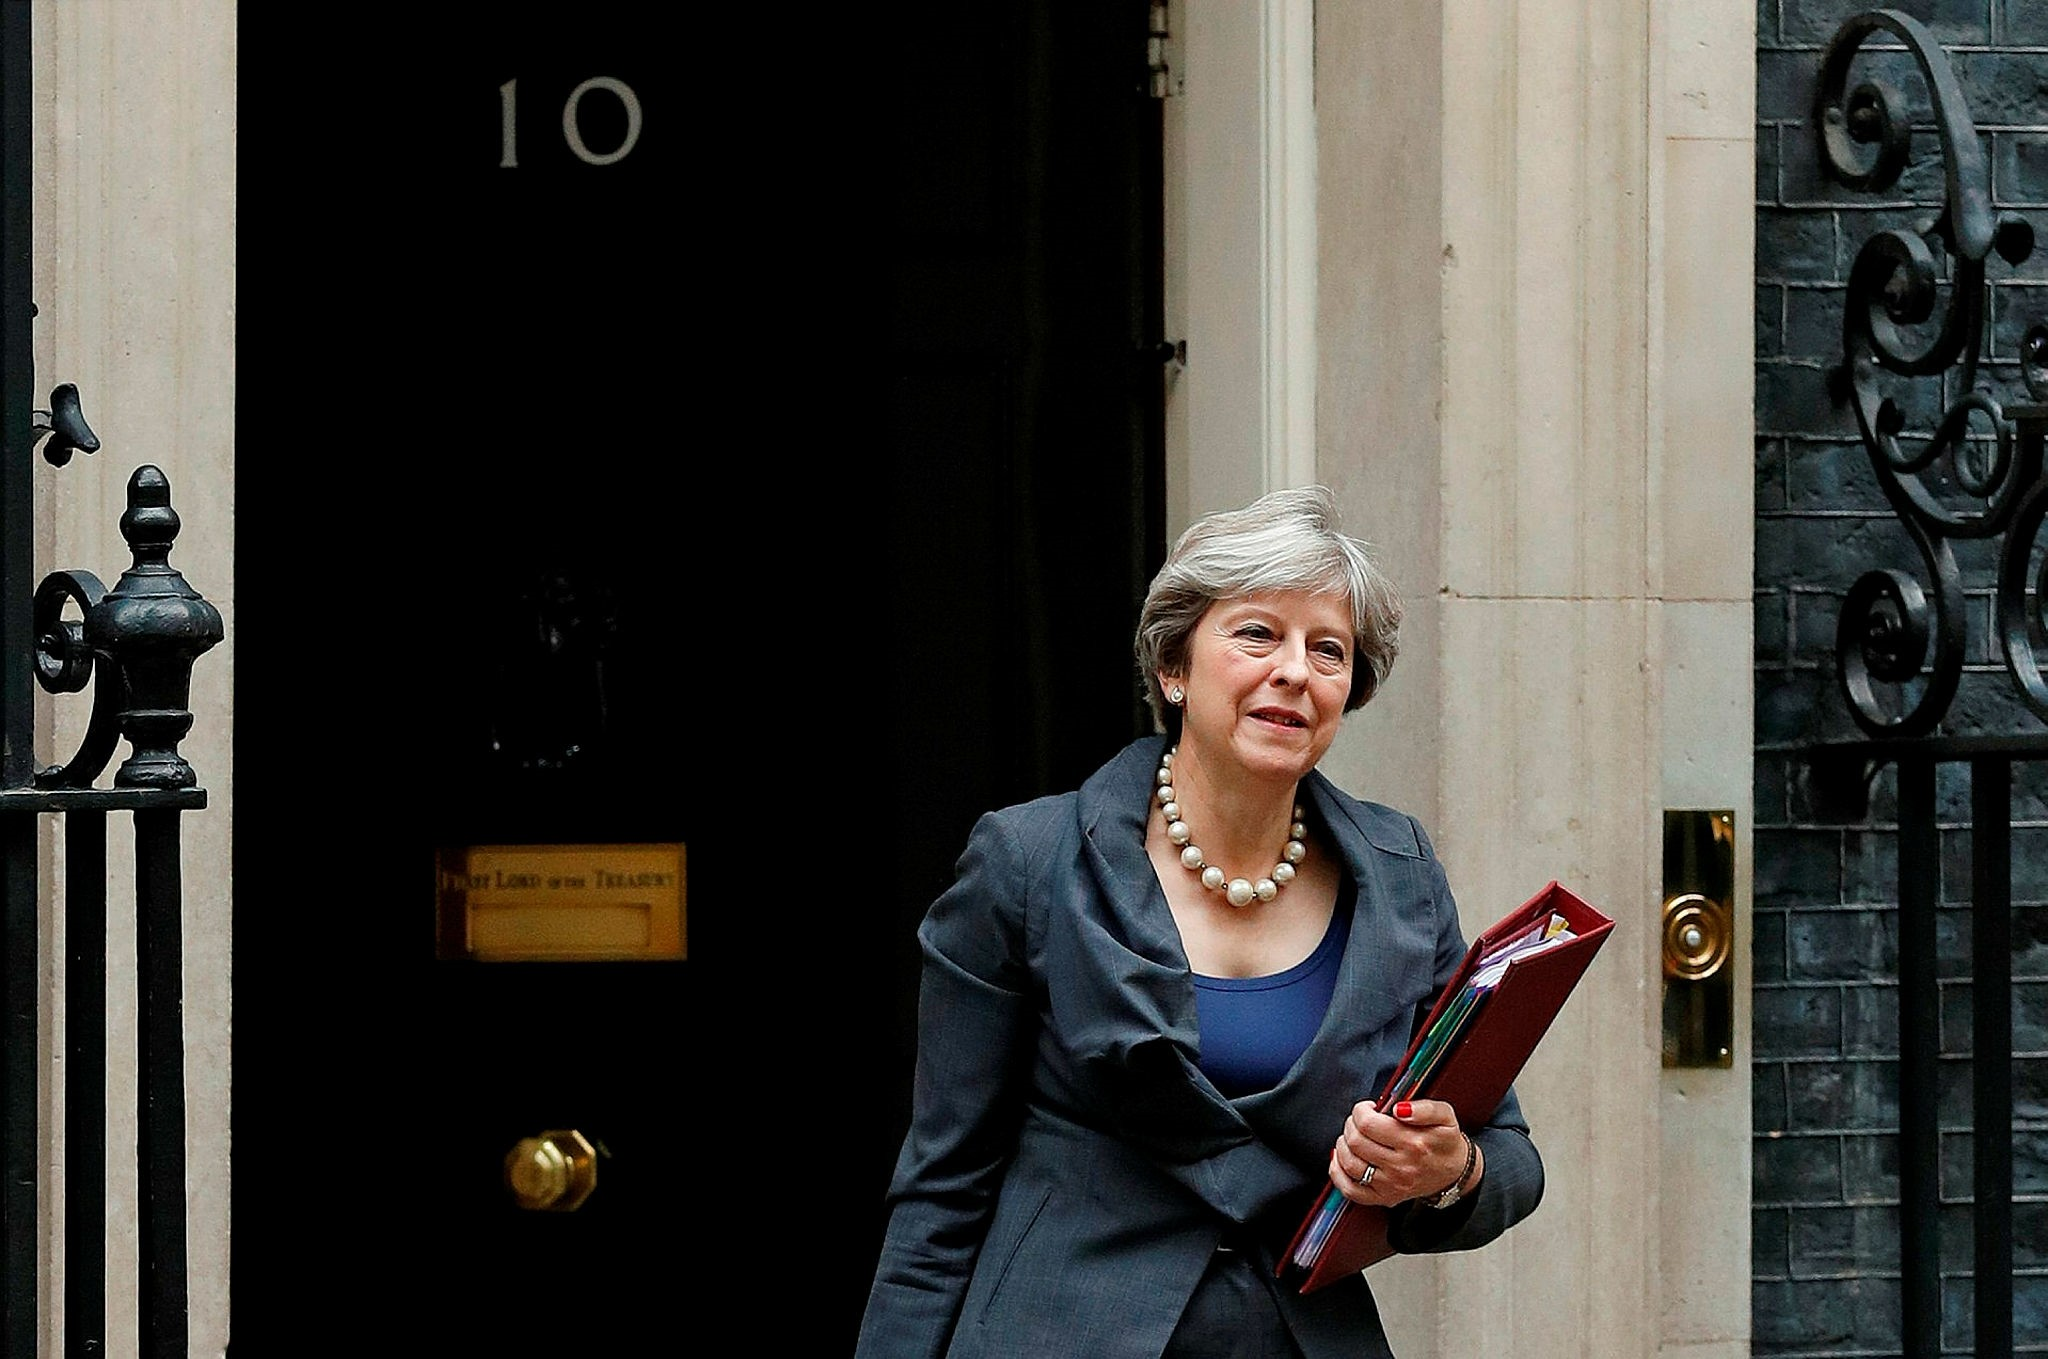 Britain's Prime Minister Theresa May leaves 10 Downing Street in central London on October 11, 2017, on her way to the Houses of Parliament to speak at Prime Minister's Questions (PMQs). (AFP Photo)